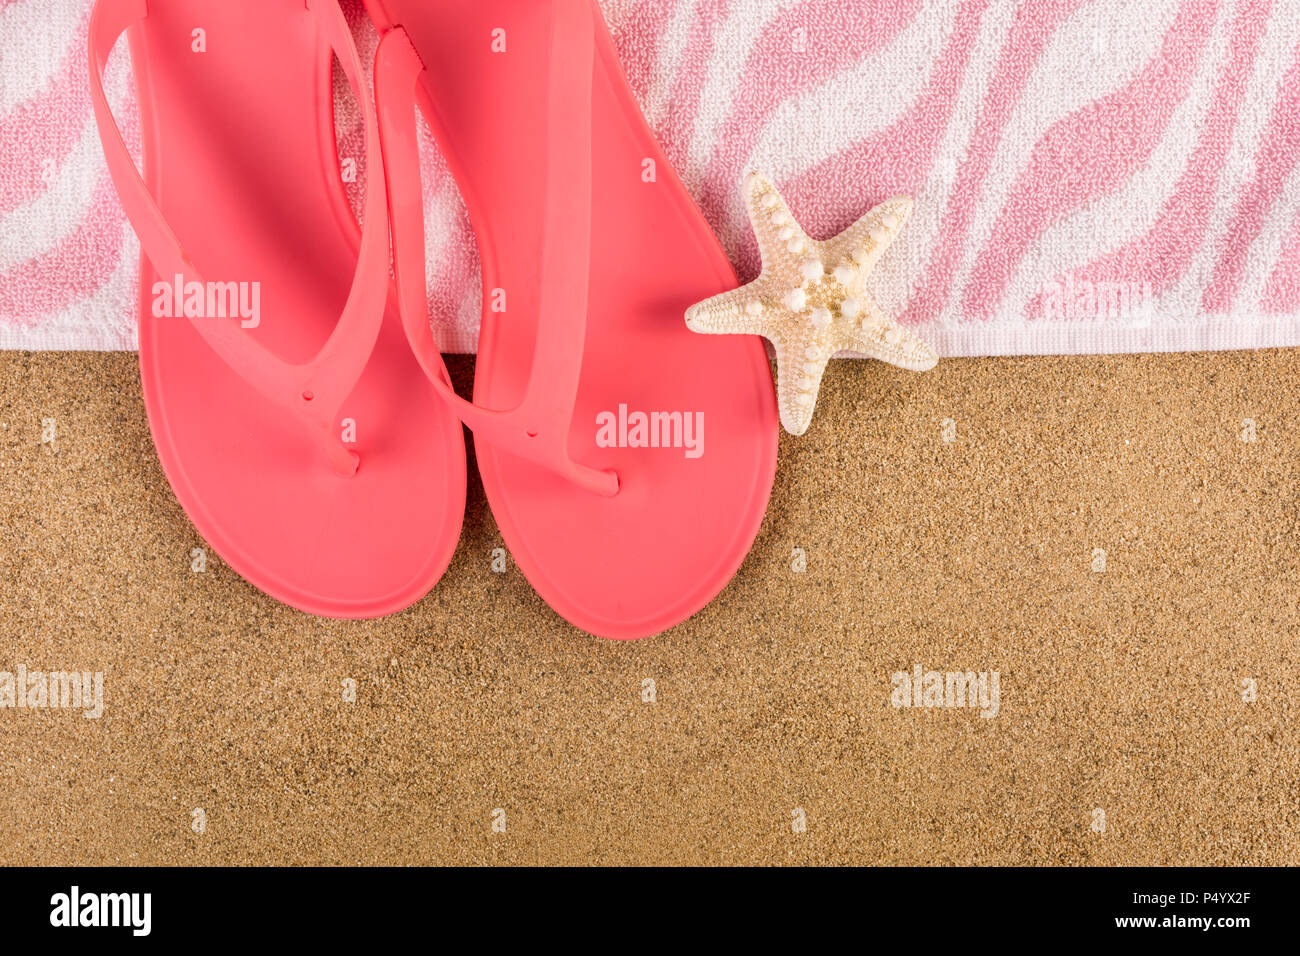 3f7923b63 Pink sandal flip flop and towel on sand beach and starfish. Summer  vacations copy space